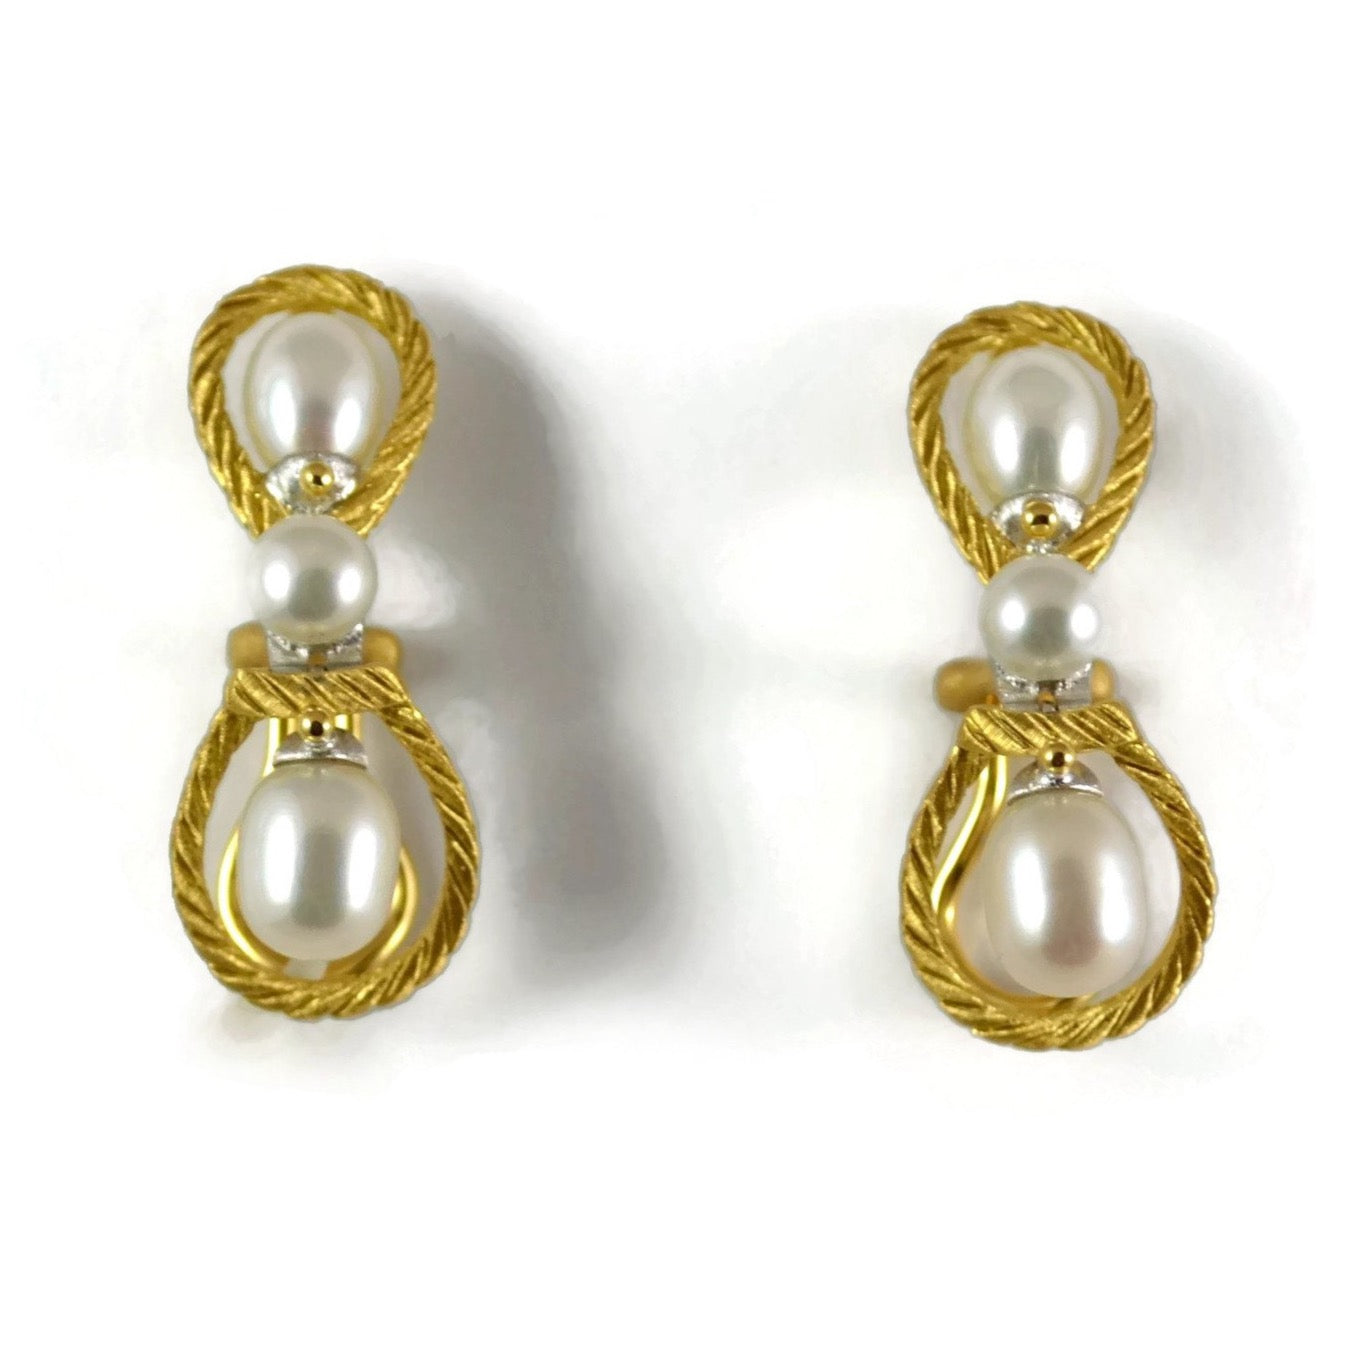 Buccellati-rete-pearls-drop-earrings-yellow-gold